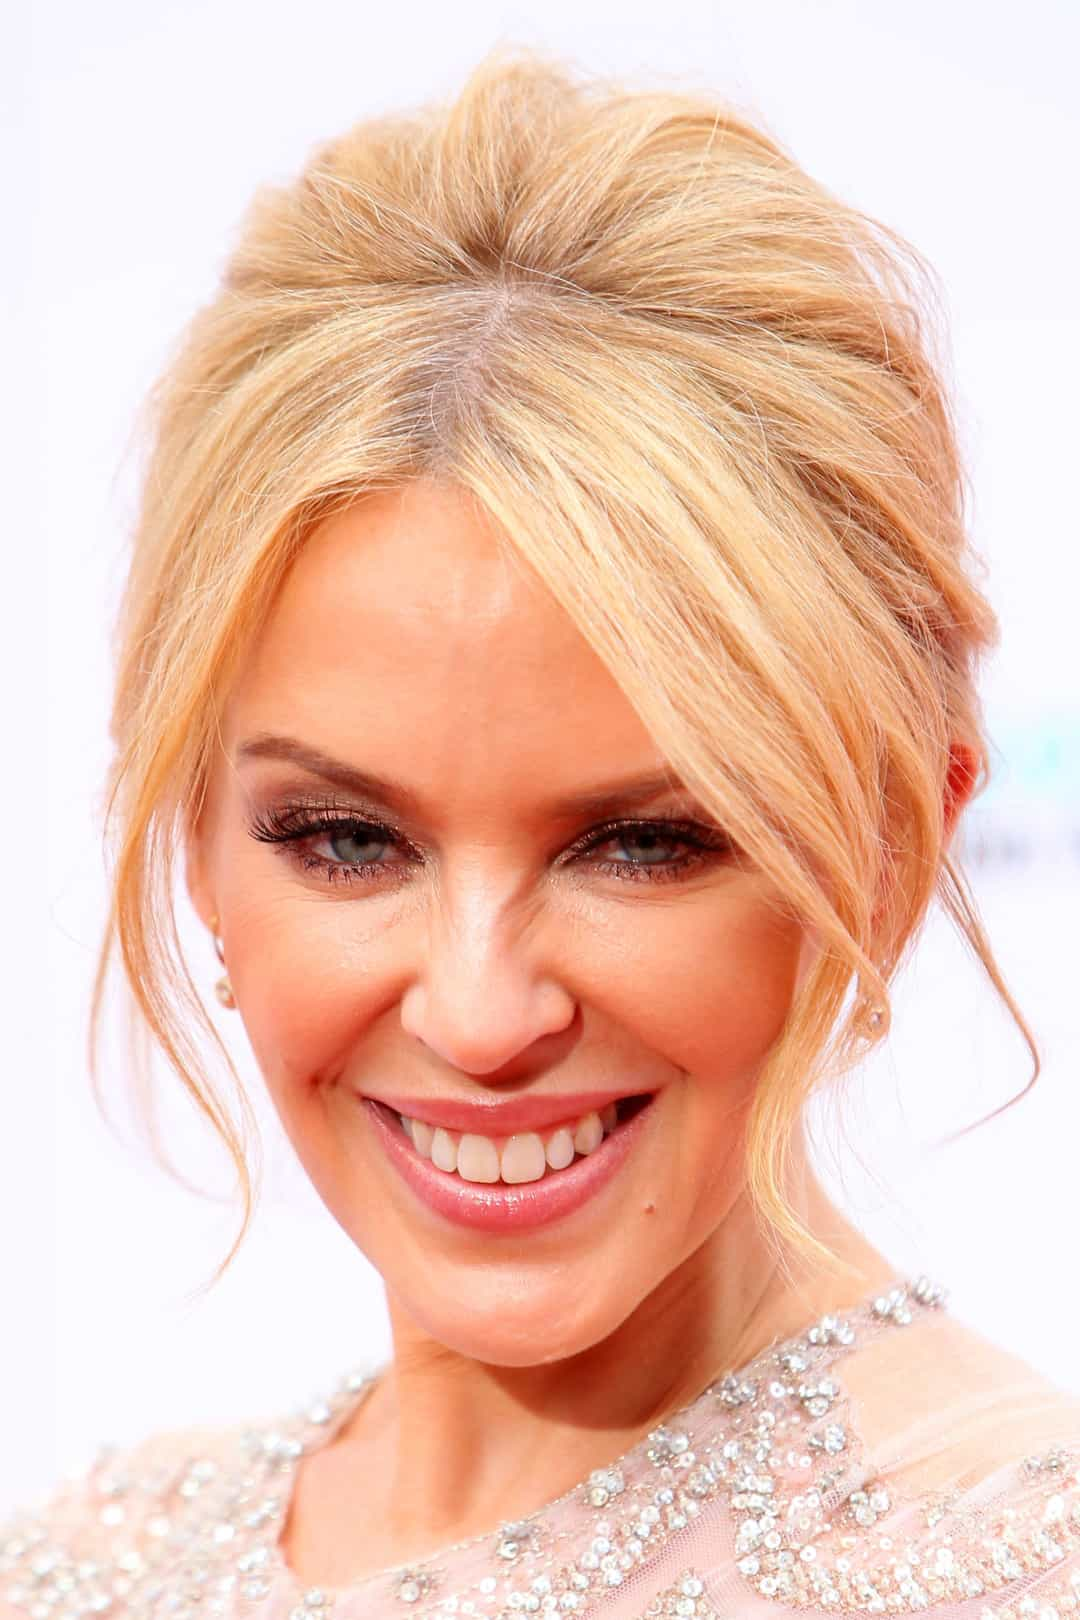 30 beautiful and single Hollywood celebrities